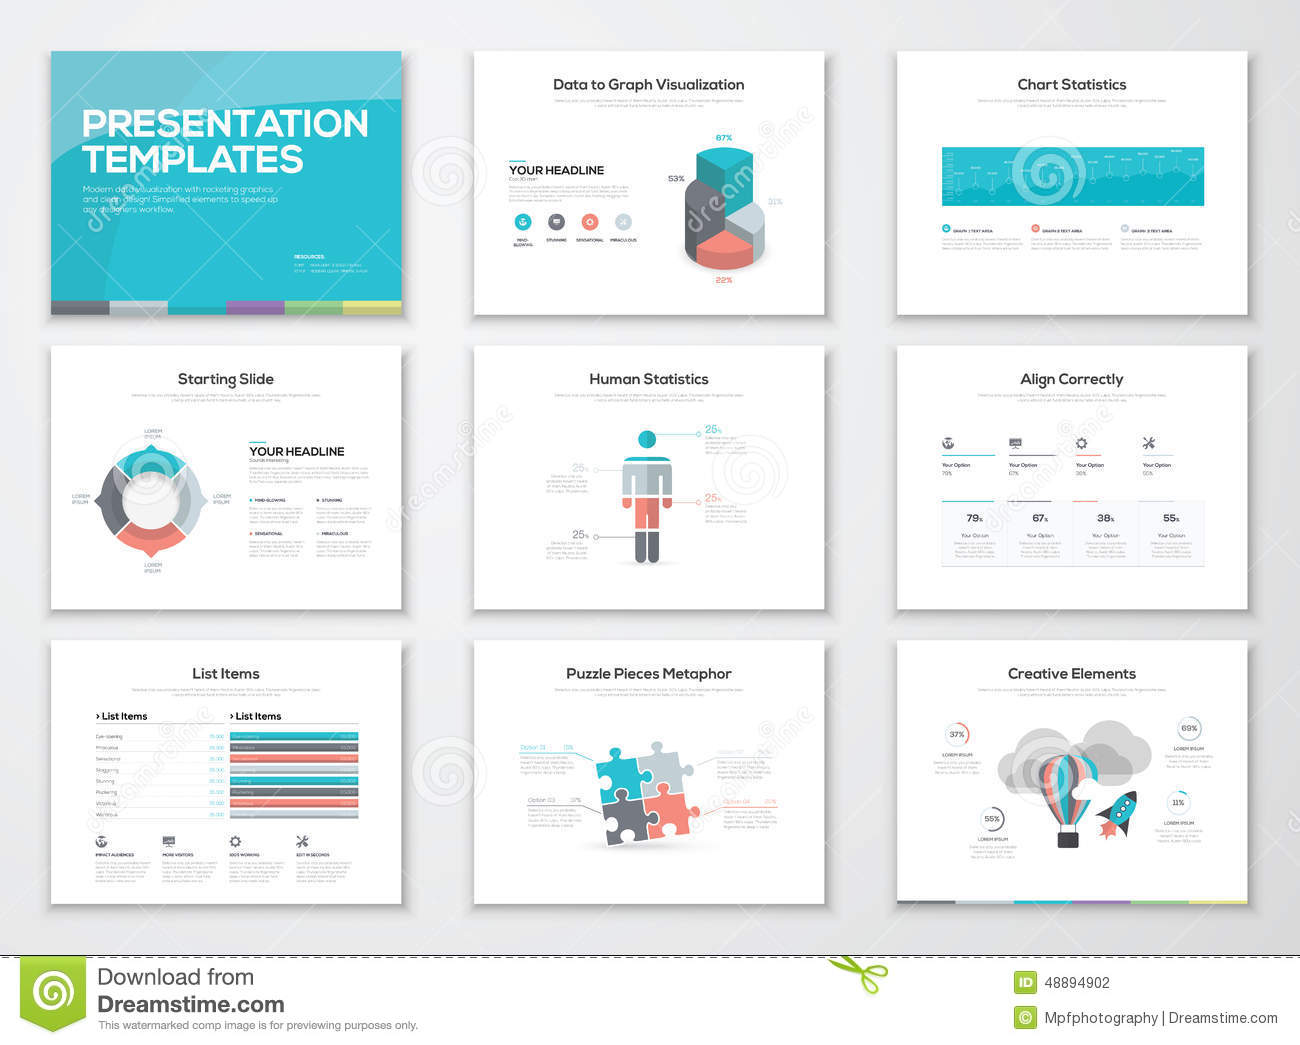 infographics presentation templates and business media brochures, Powerpoint templates